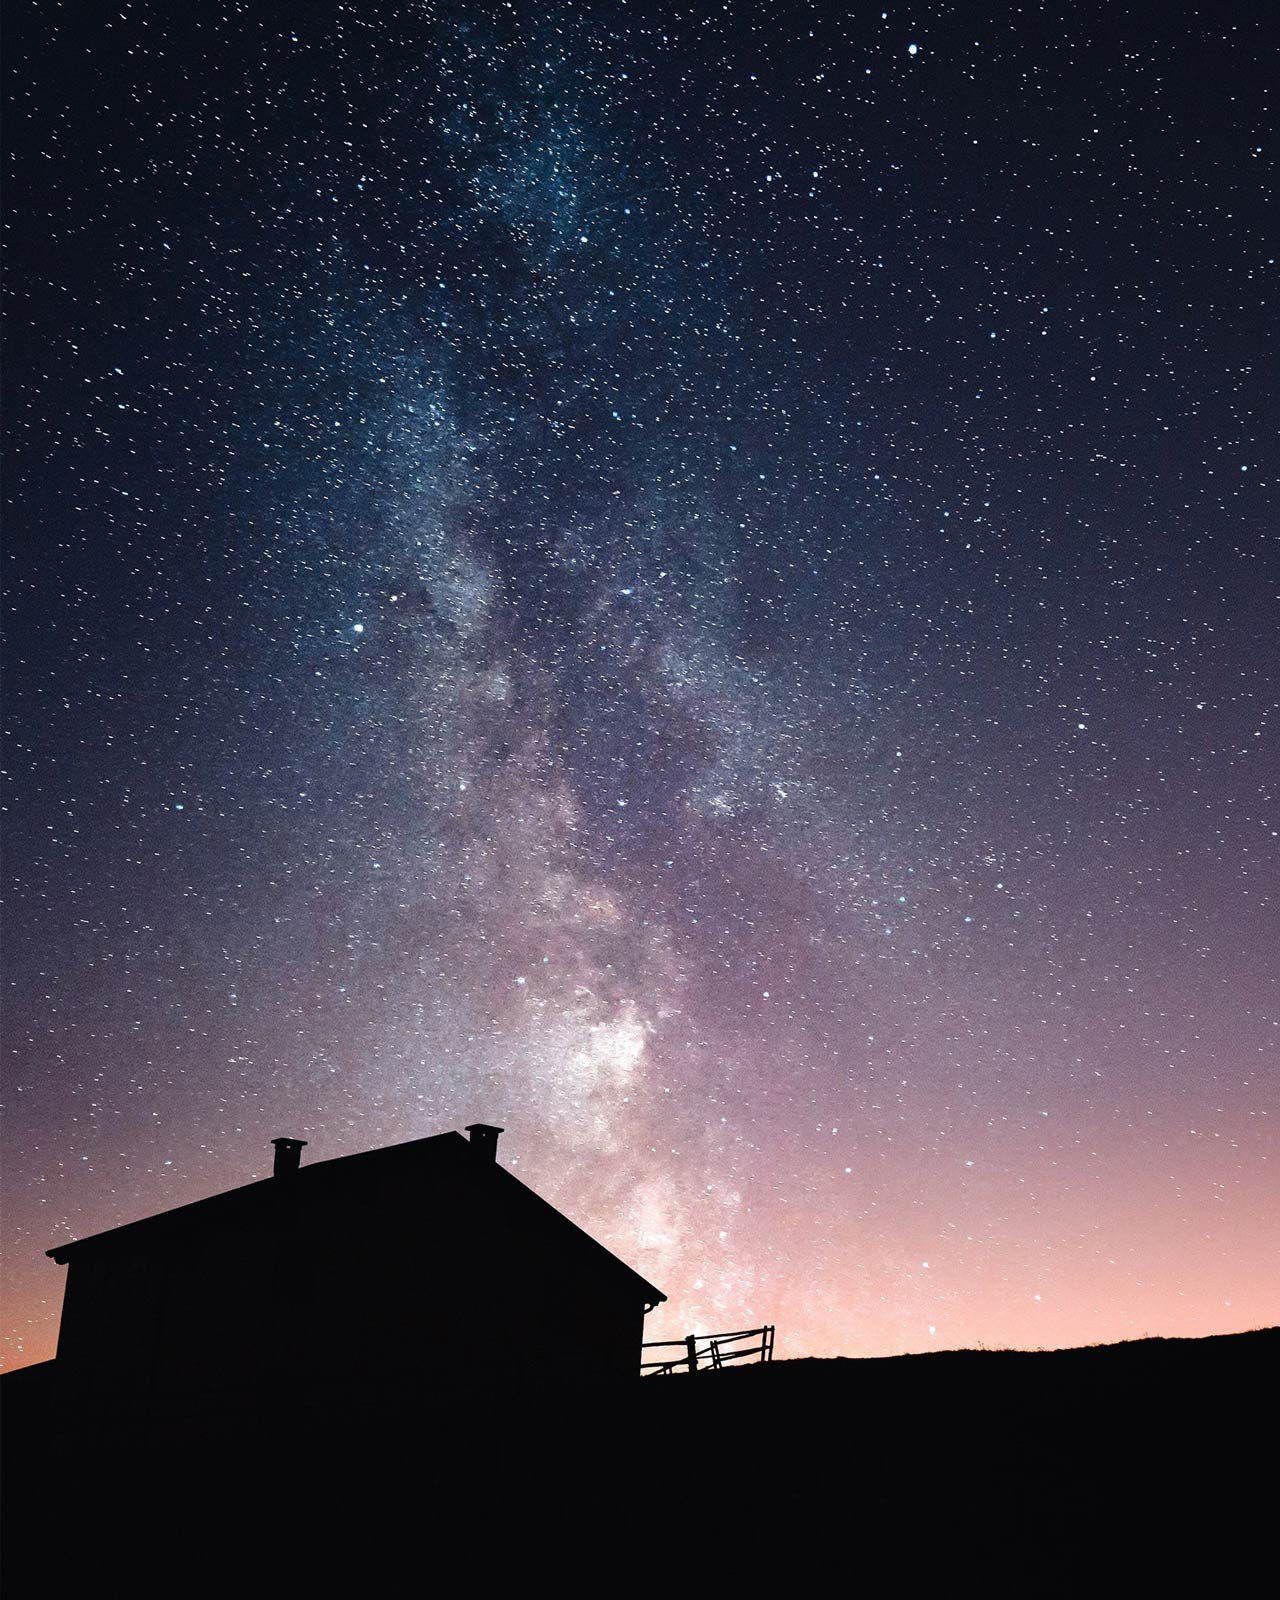 Silhouette of house under starry sky and milky way.